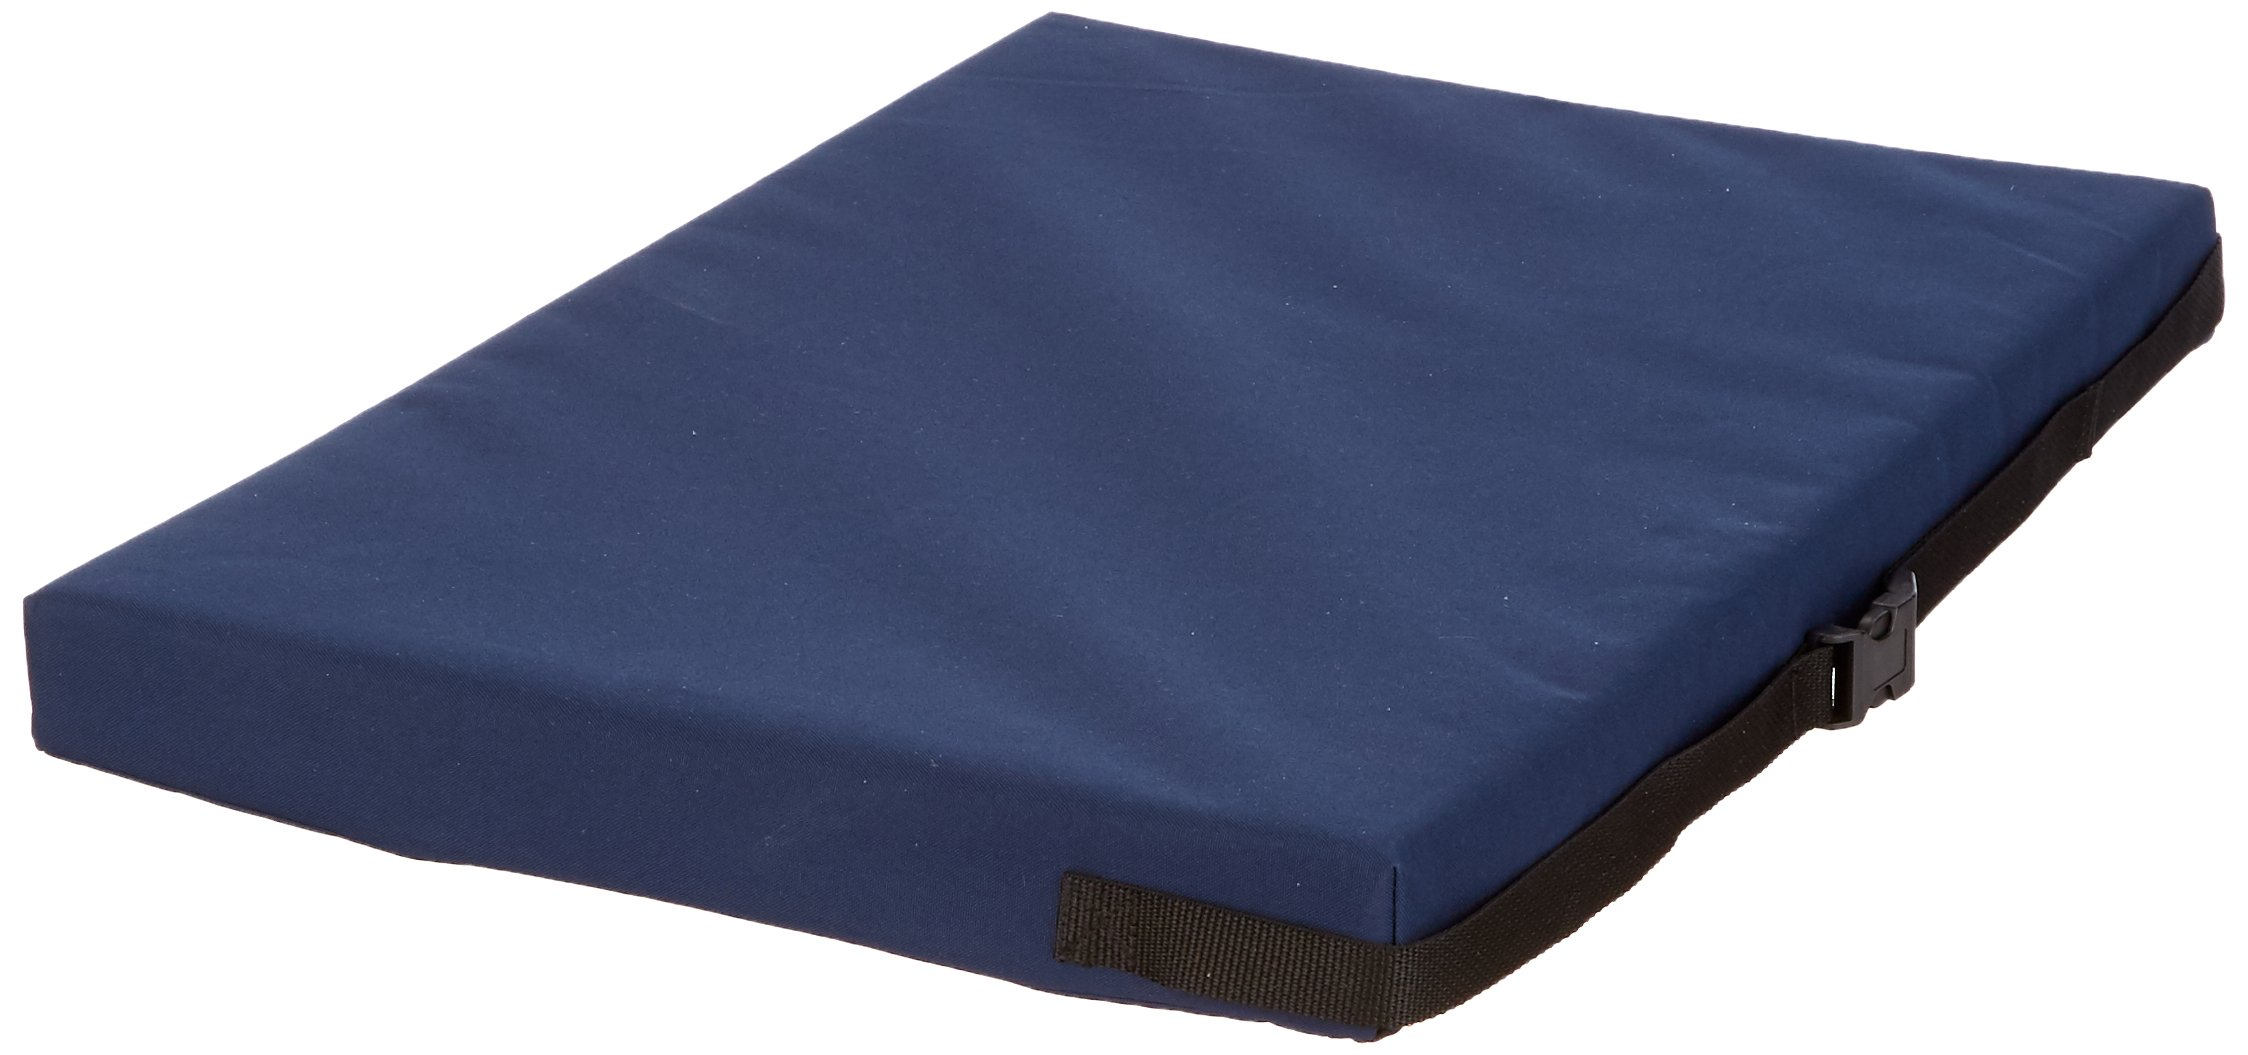 Sammons Preston Bariatric Memory Foam Cushion, 26'' x 18'', Blue, Wheelchair Cushion, 2'' Memory Foam Padding, Support Pillow, Wipe Clean, Accommodates Weight Up to 400 lbs